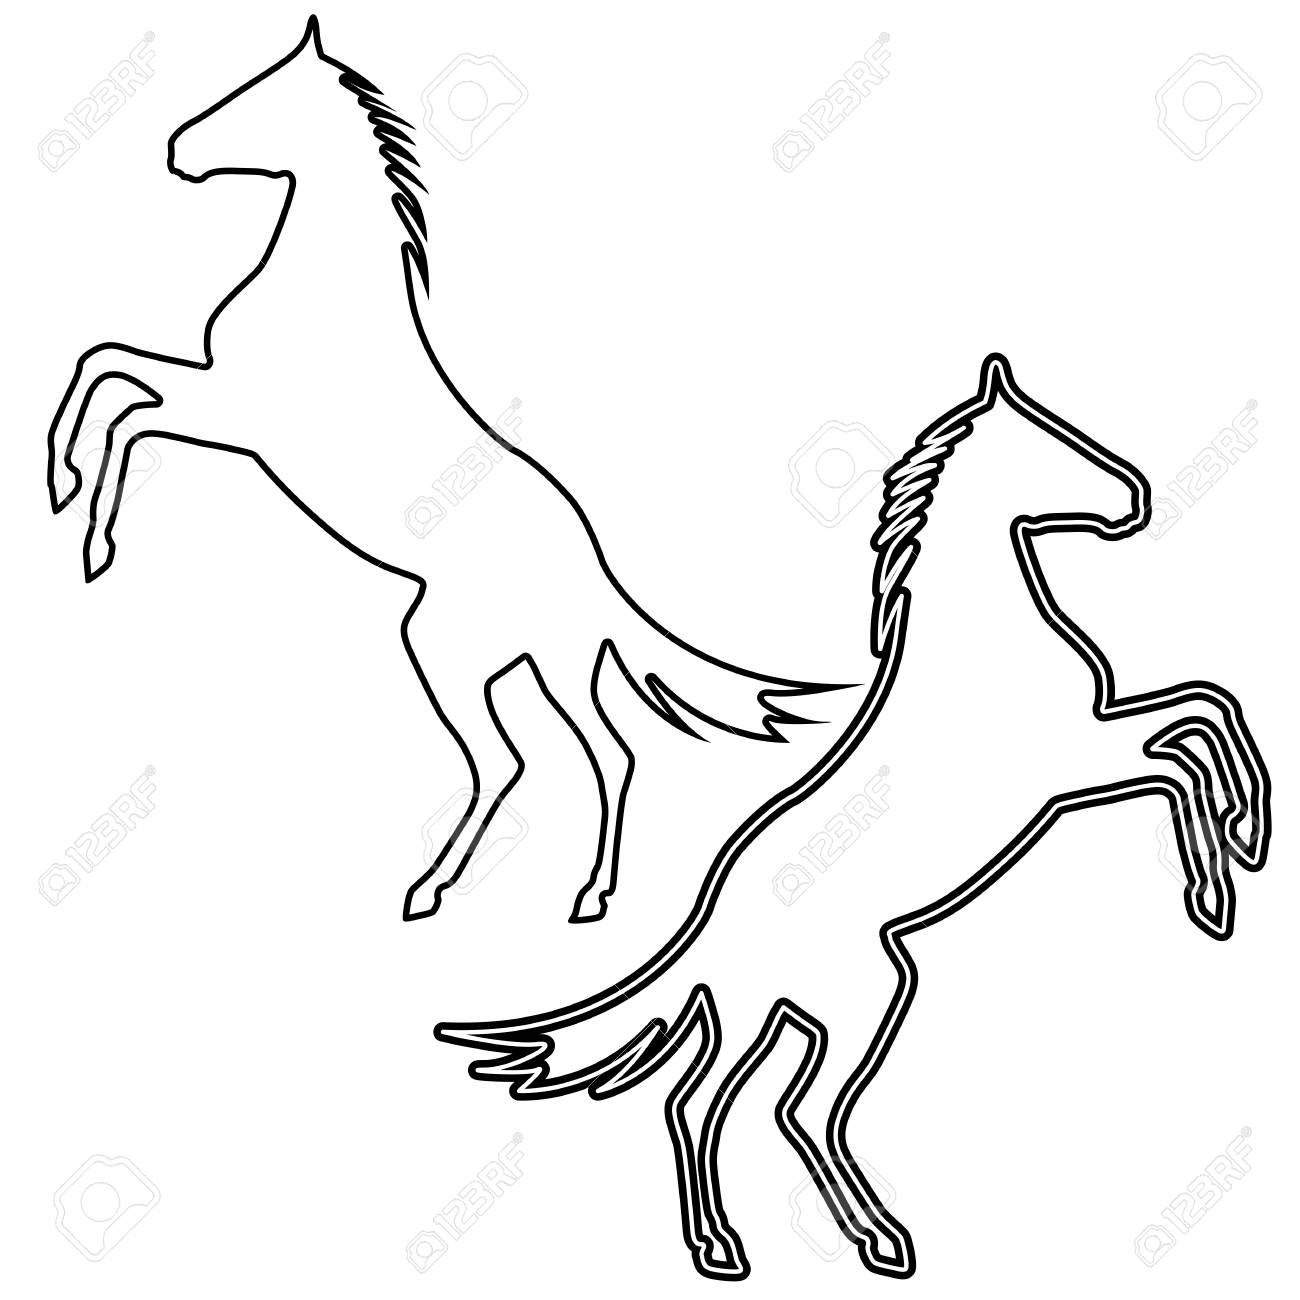 1300x1300 Rearing Up Horse Silhouette Royalty Free Cliparts, Vectors,